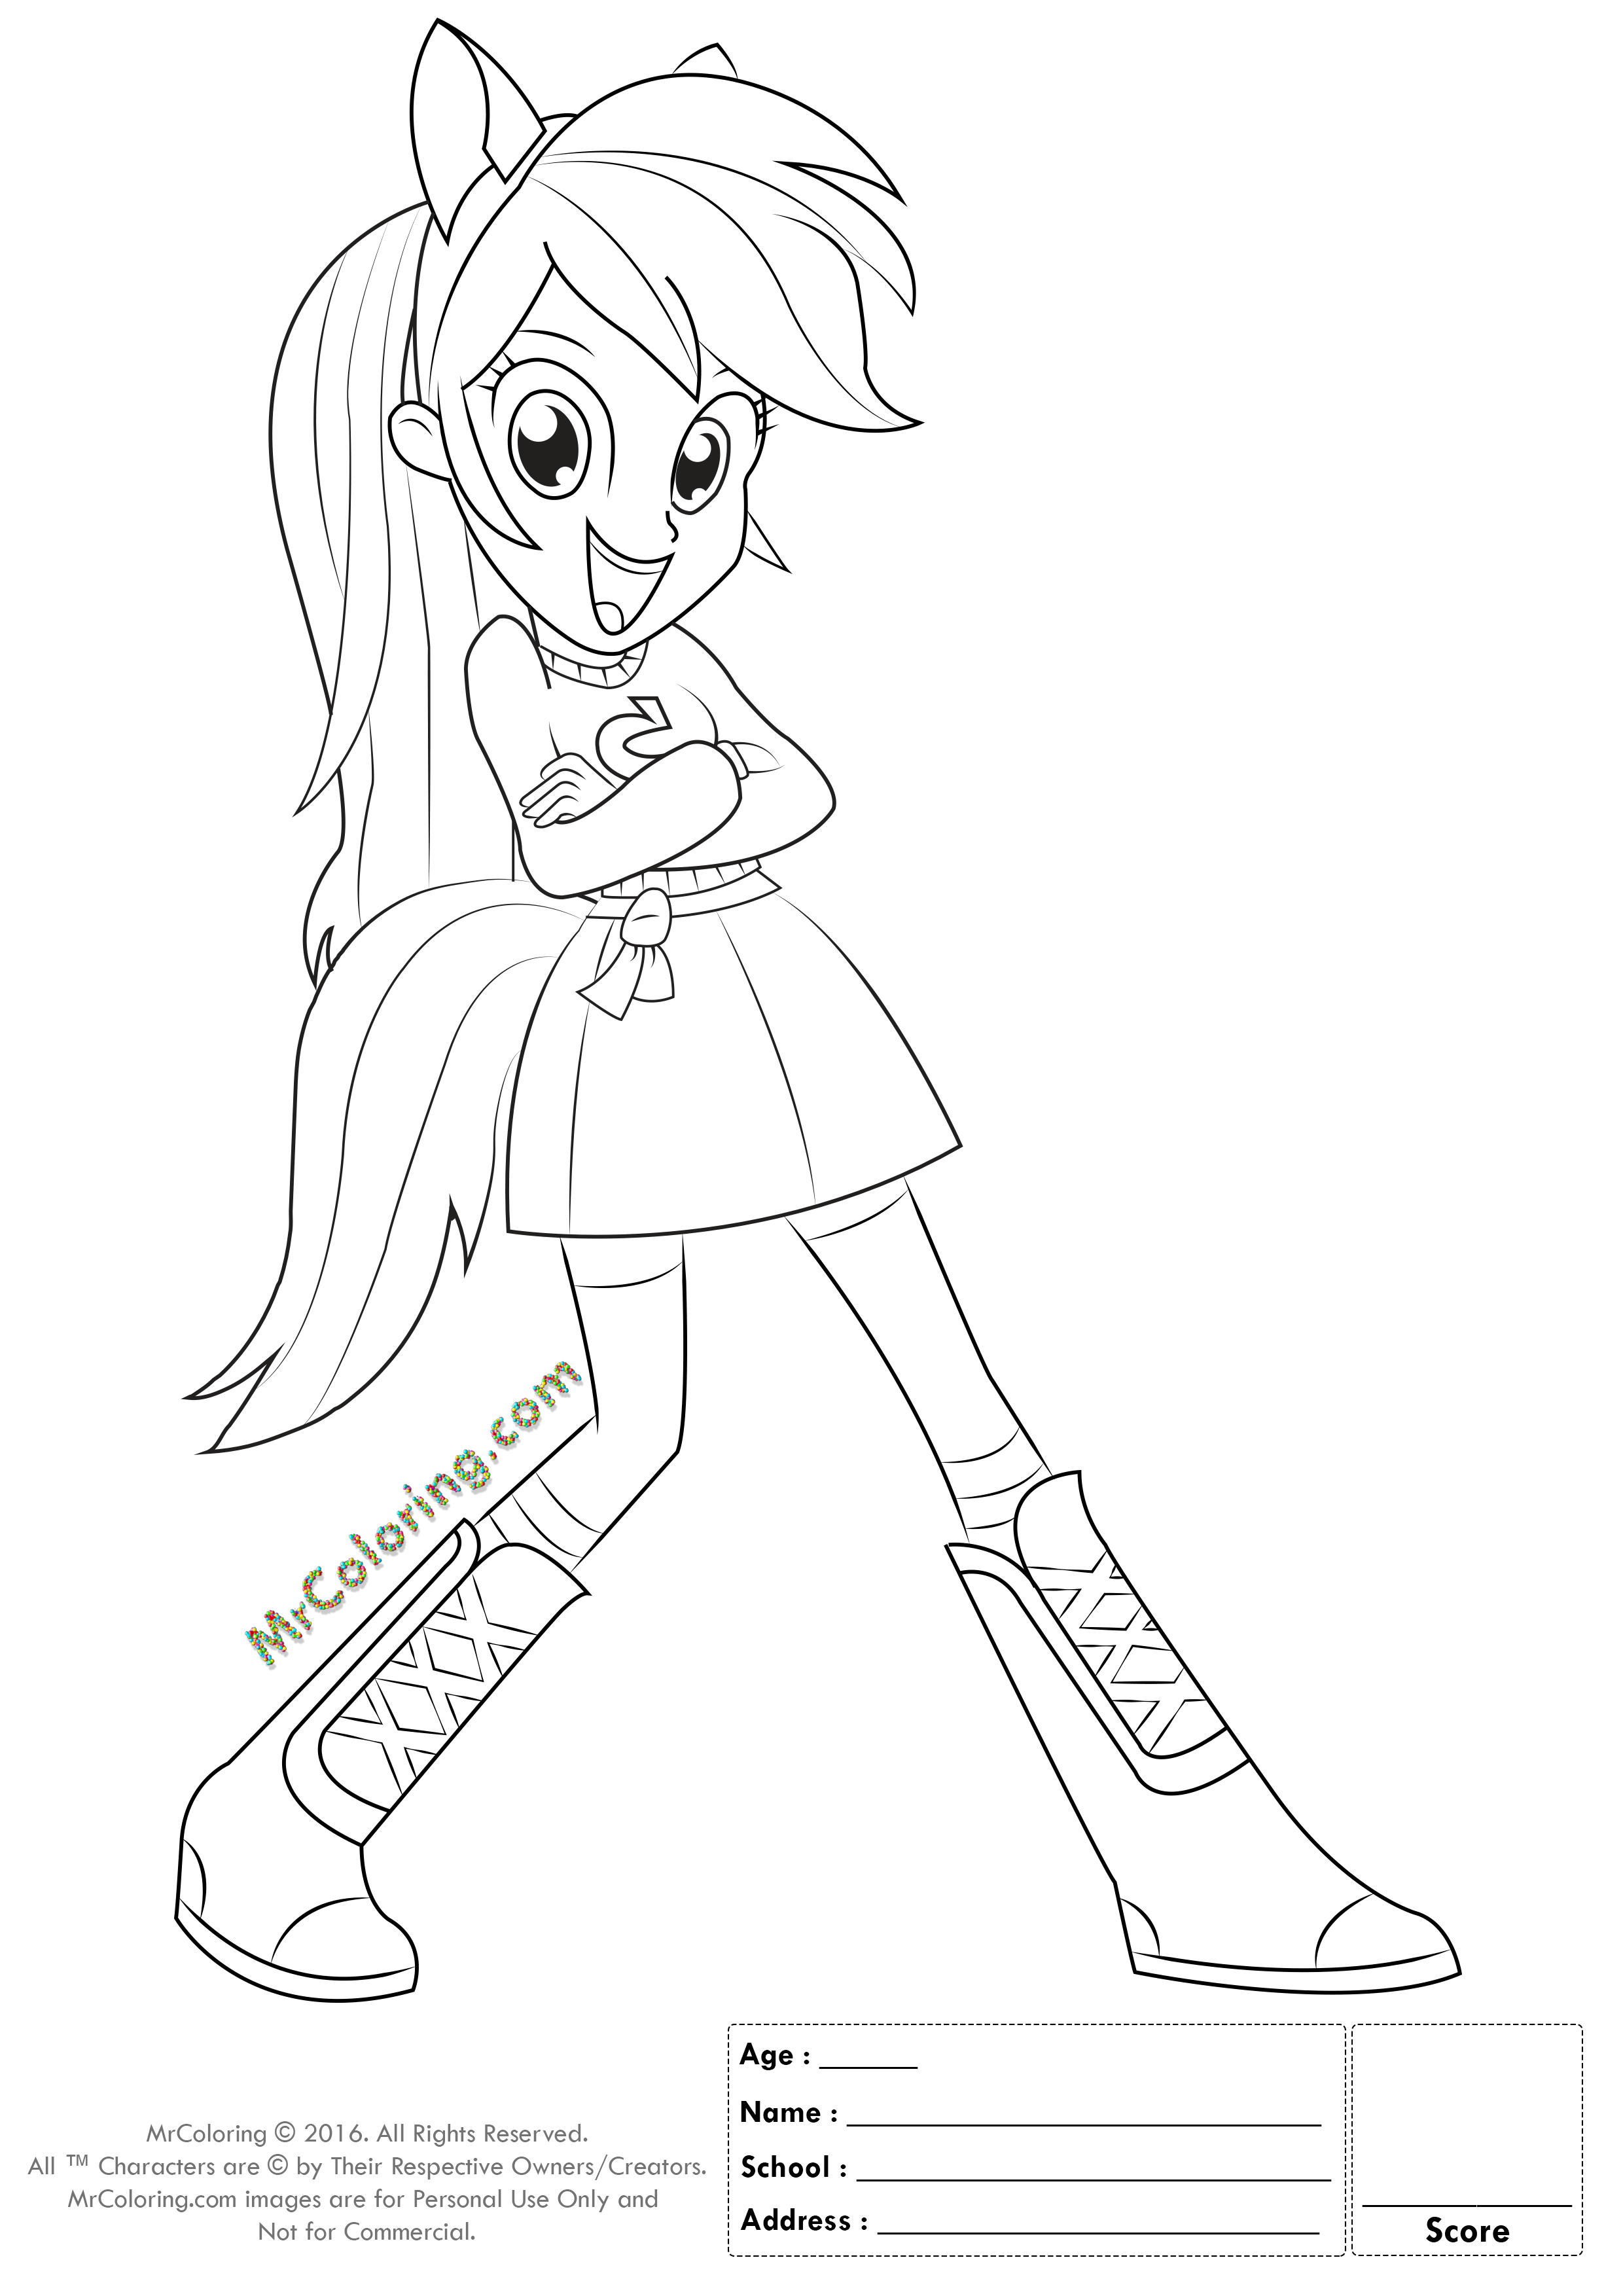 Mlp Rainbow Dash Equestria Girls Coloring Pages 3 Rainbow Dash Equestria Coloring Page Printable